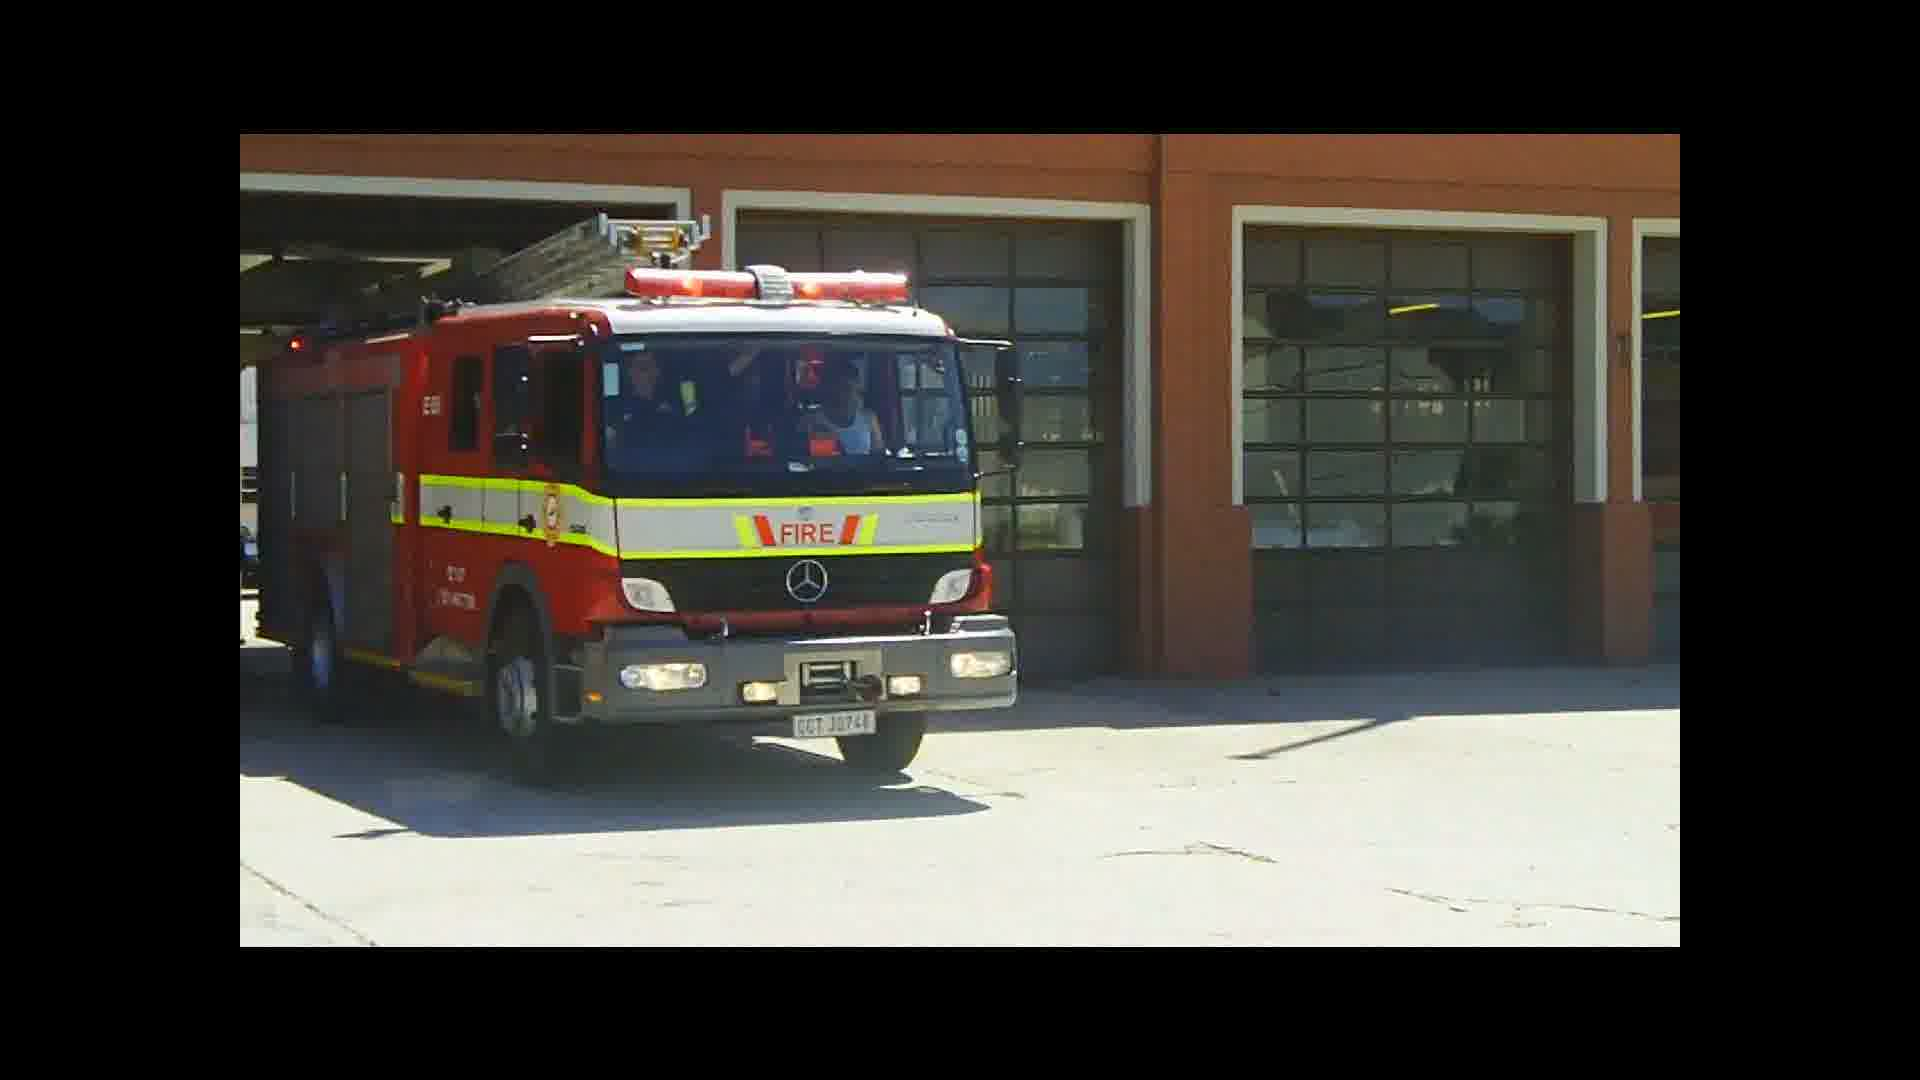 Fire department Cape Town (collection)